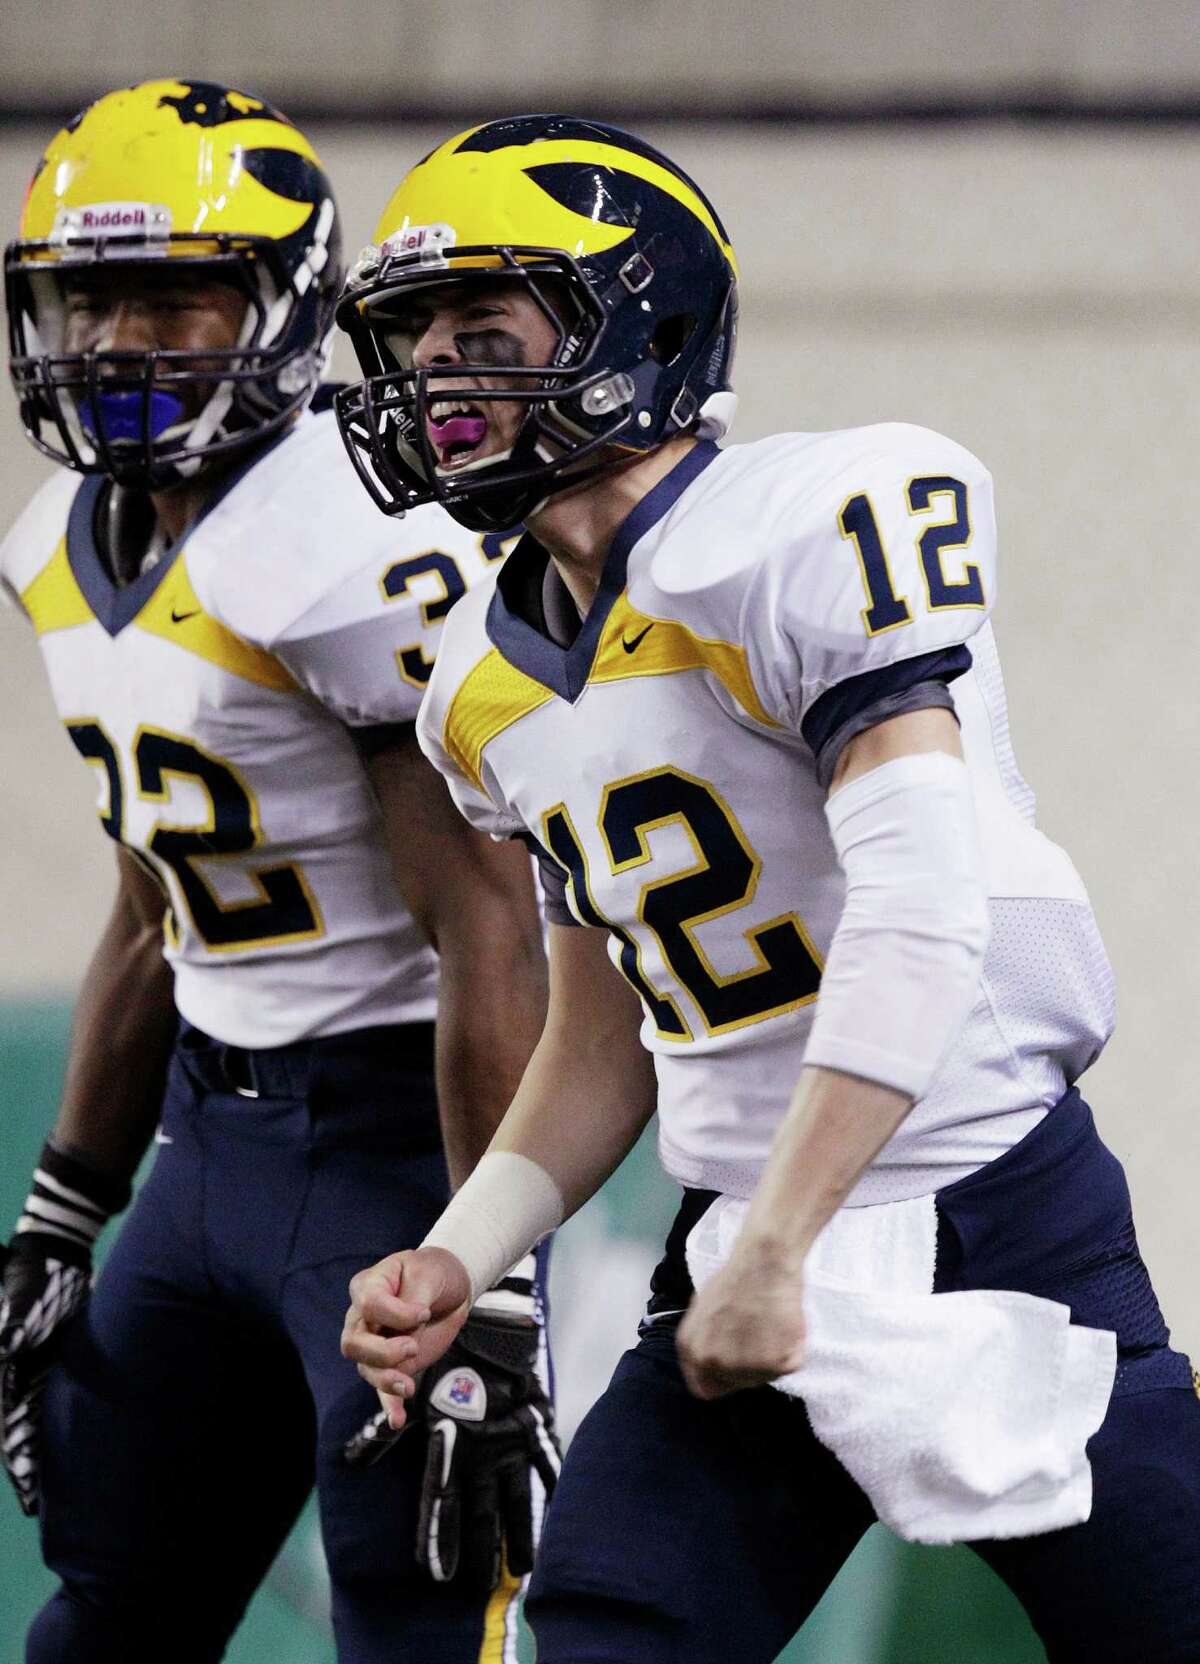 Bellevue quarterback Jack Meggs (12) celebrates with Budda Baker (32) after Meggs scored a touchdown in the first half against Eastside Catholic in the 3A division high school state championship football game, Friday, Nov. 30, 2012, in Tacoma, Wash.